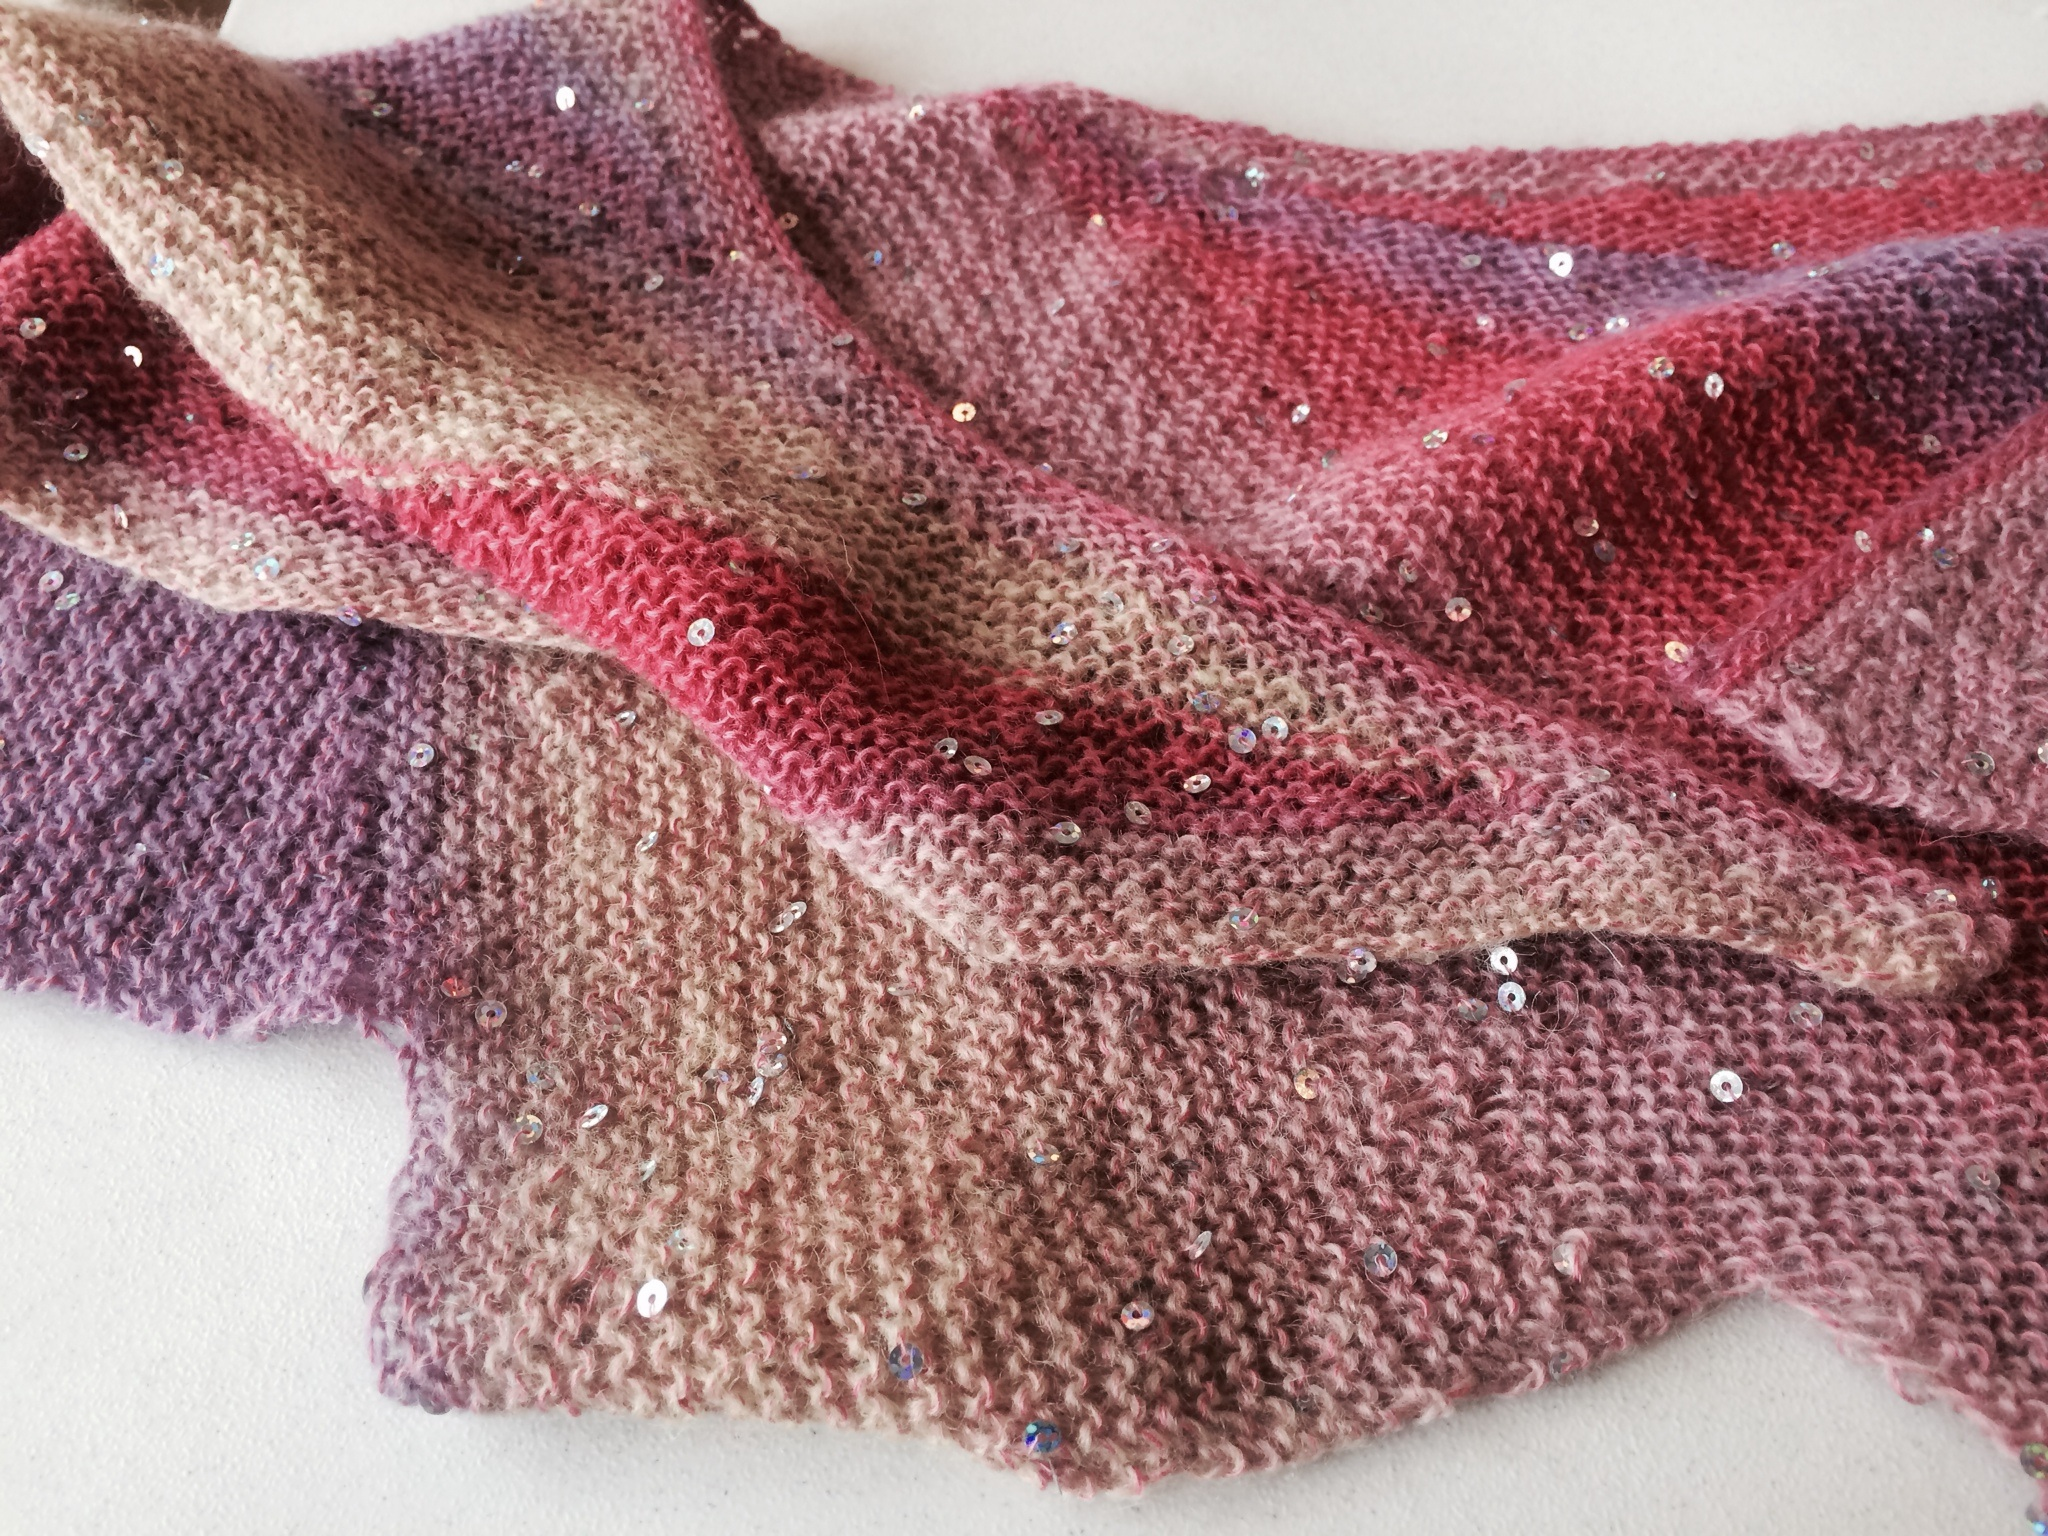 Summer Sparkles, and Joan Sparks a Trend – Ingebretsen\'s Knits